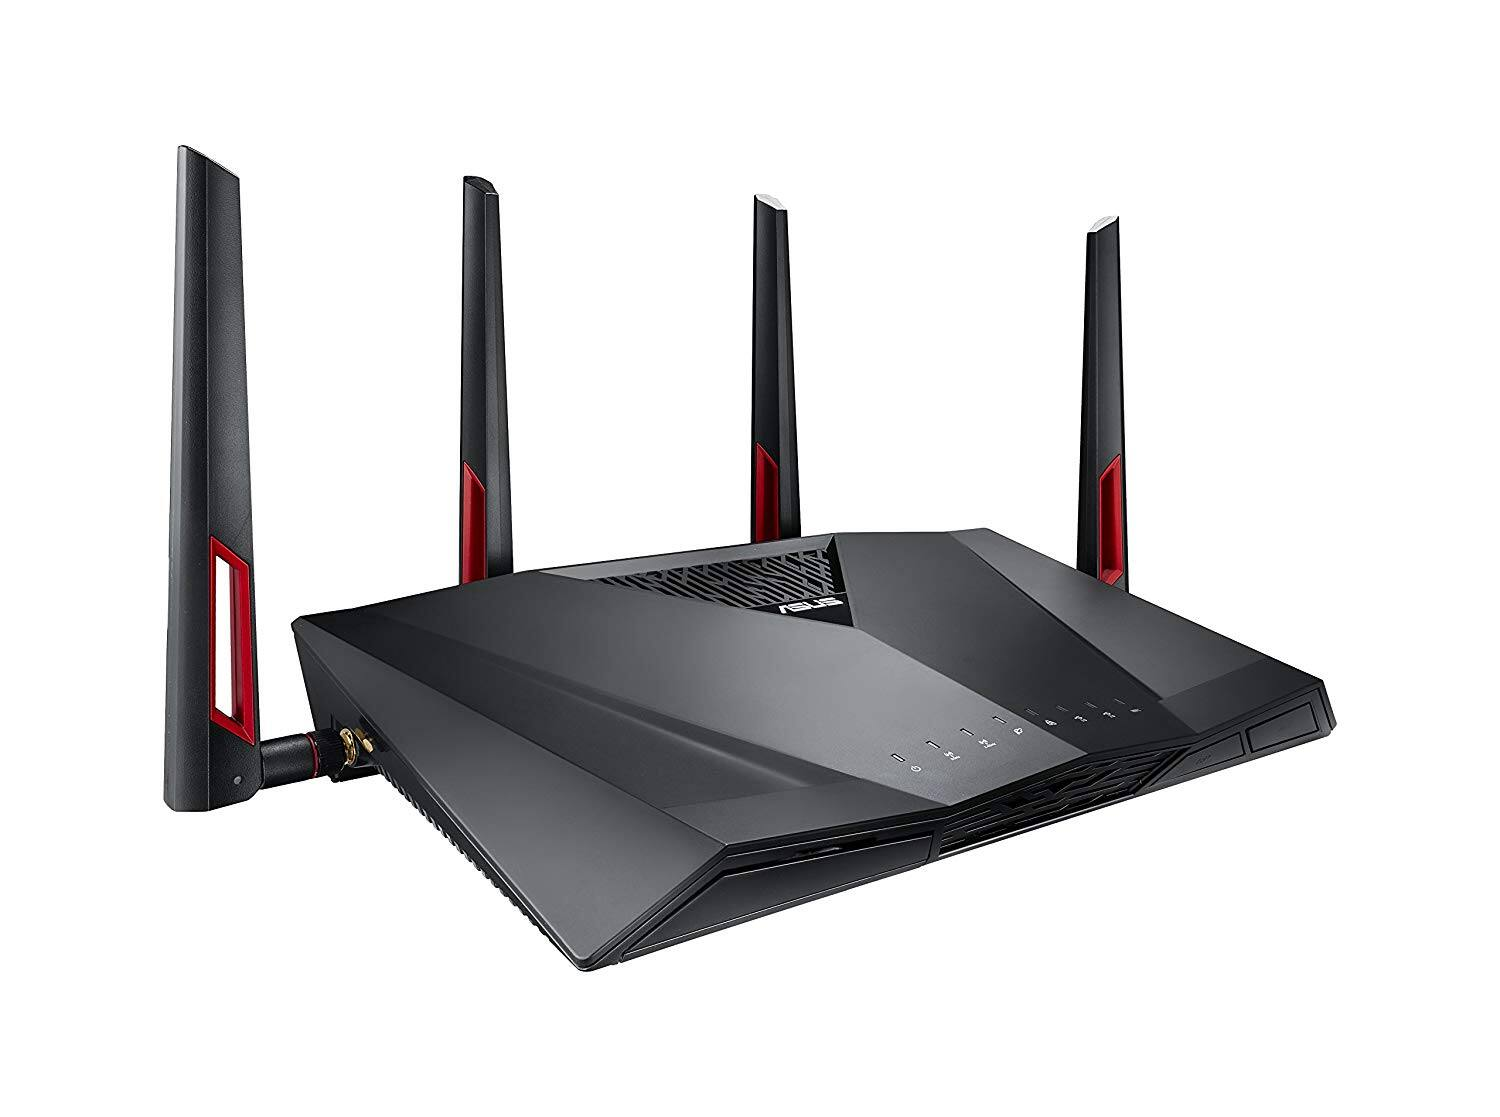 20% off Used Asus Routers during Amazon Warehouse Earth Week deals $121.36